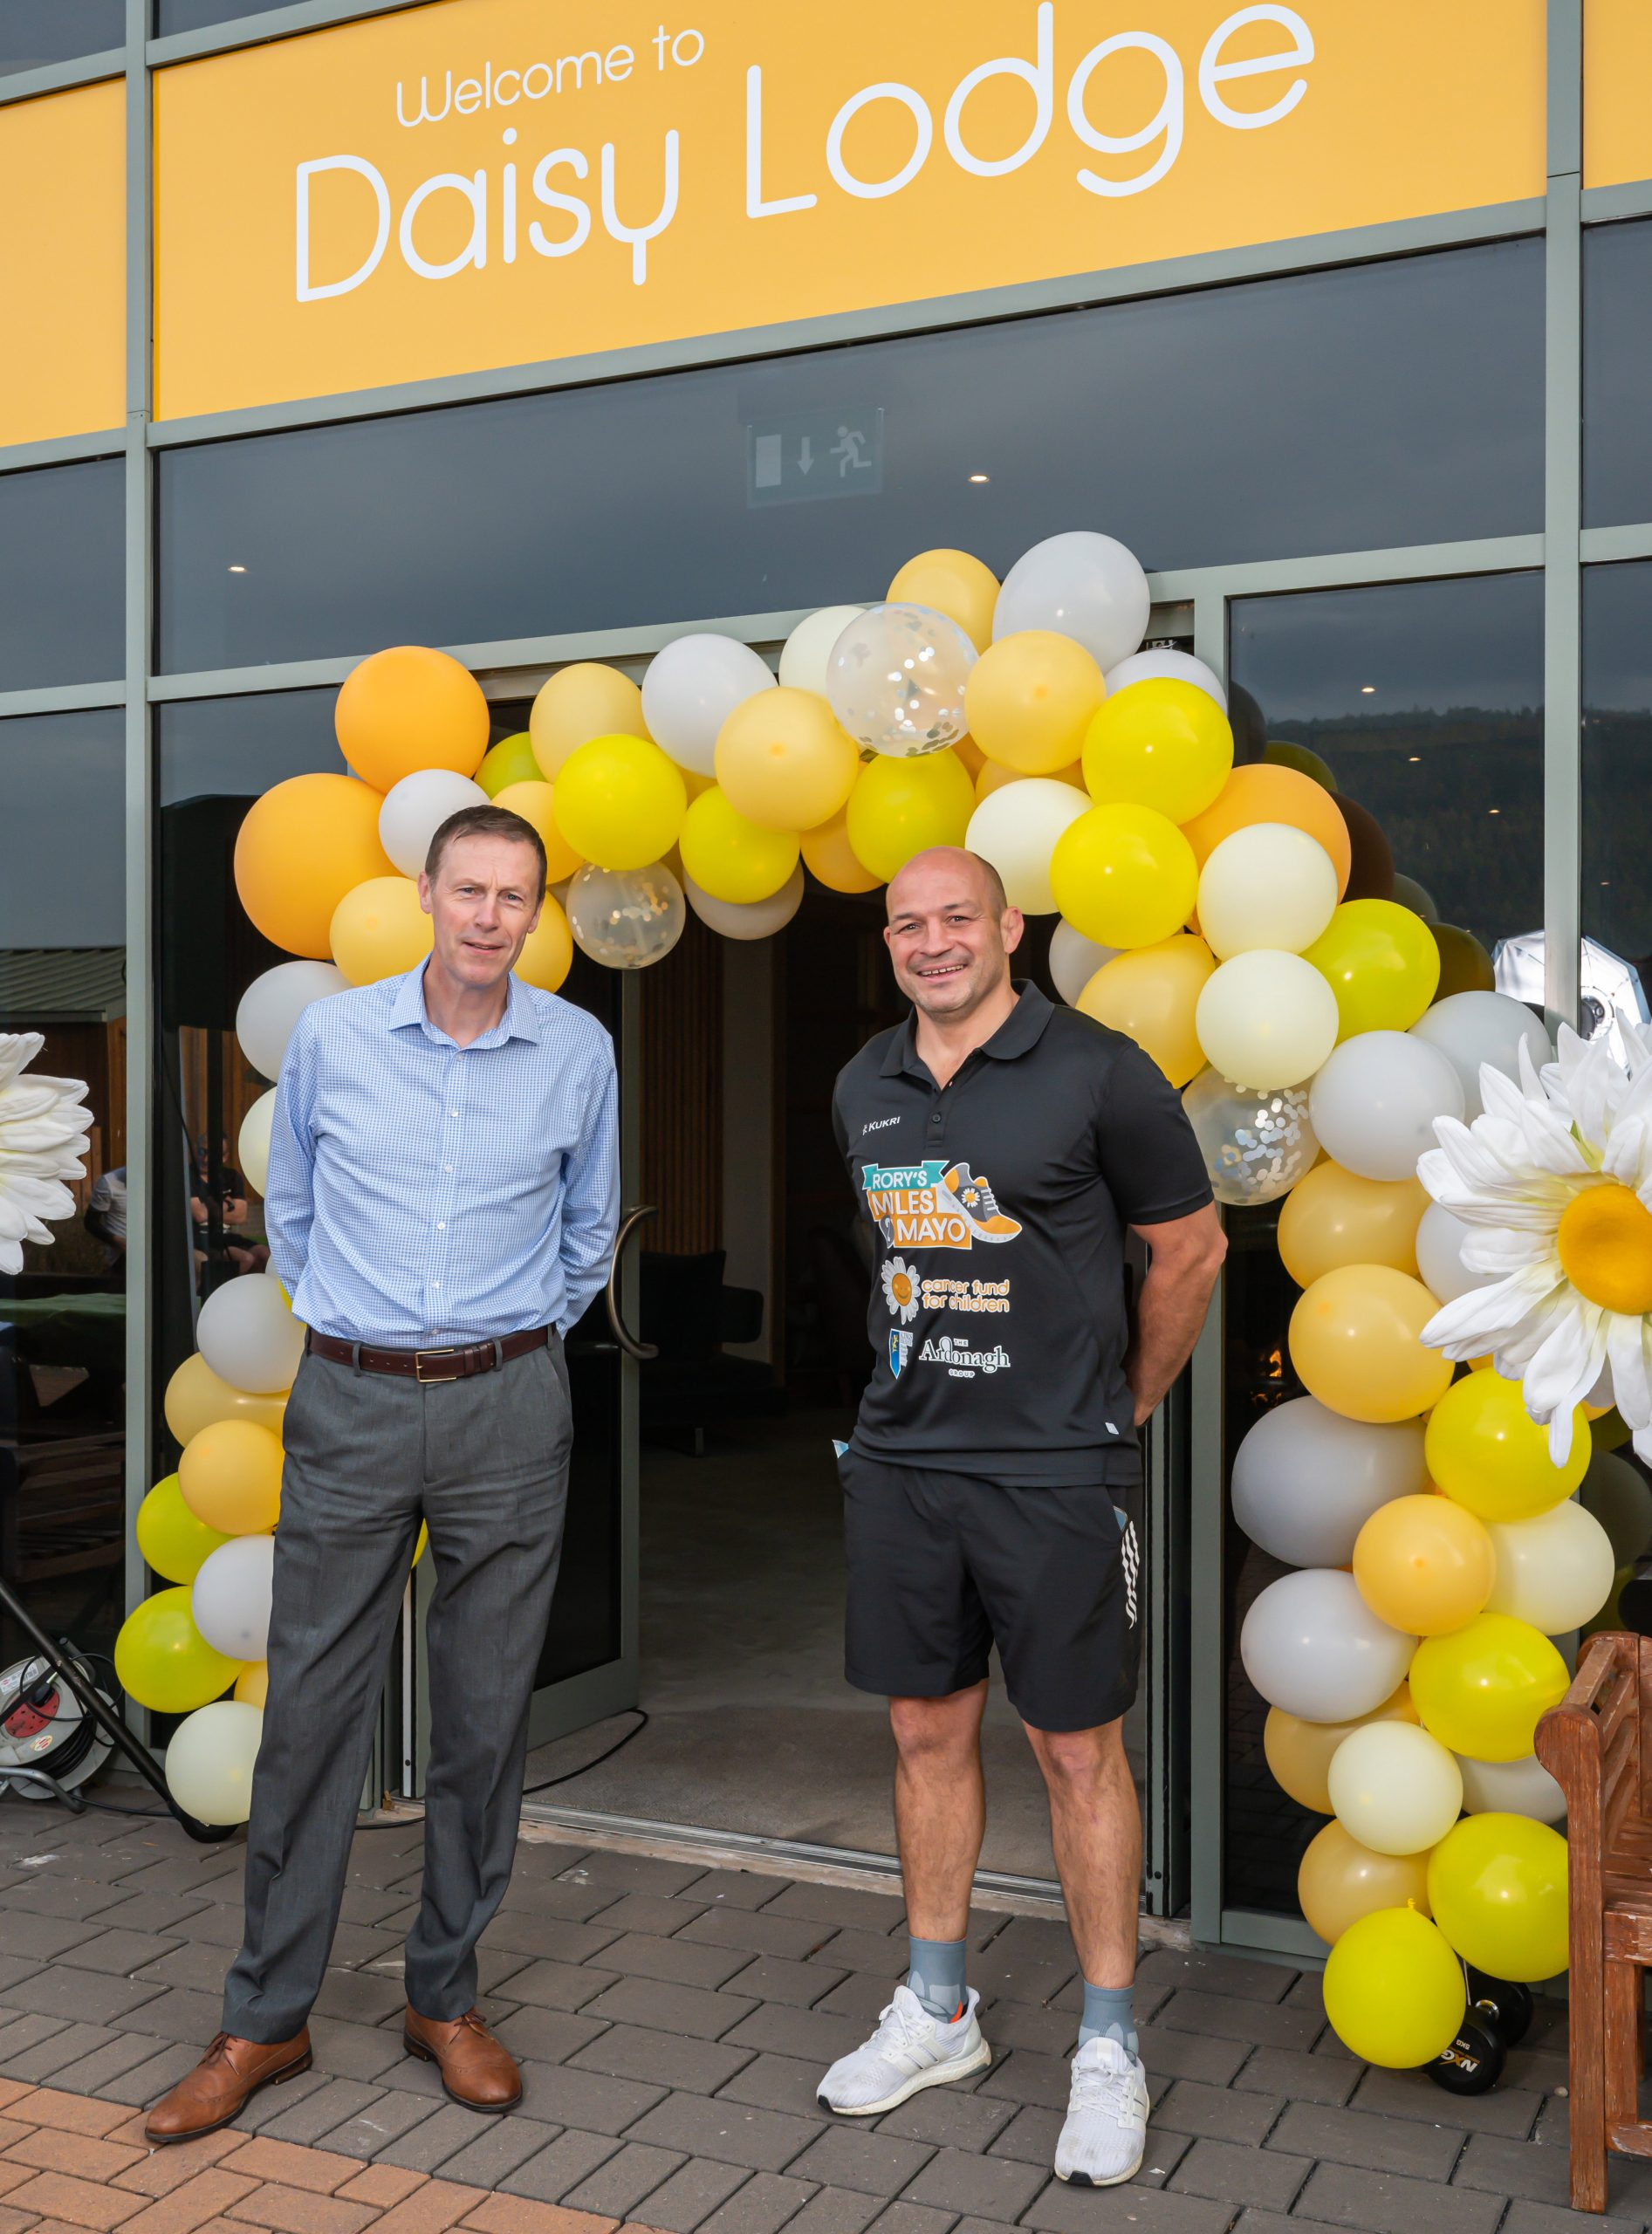 EUROSPAR and Rory put Best foot forward to support Miles 2 Mayo challenge